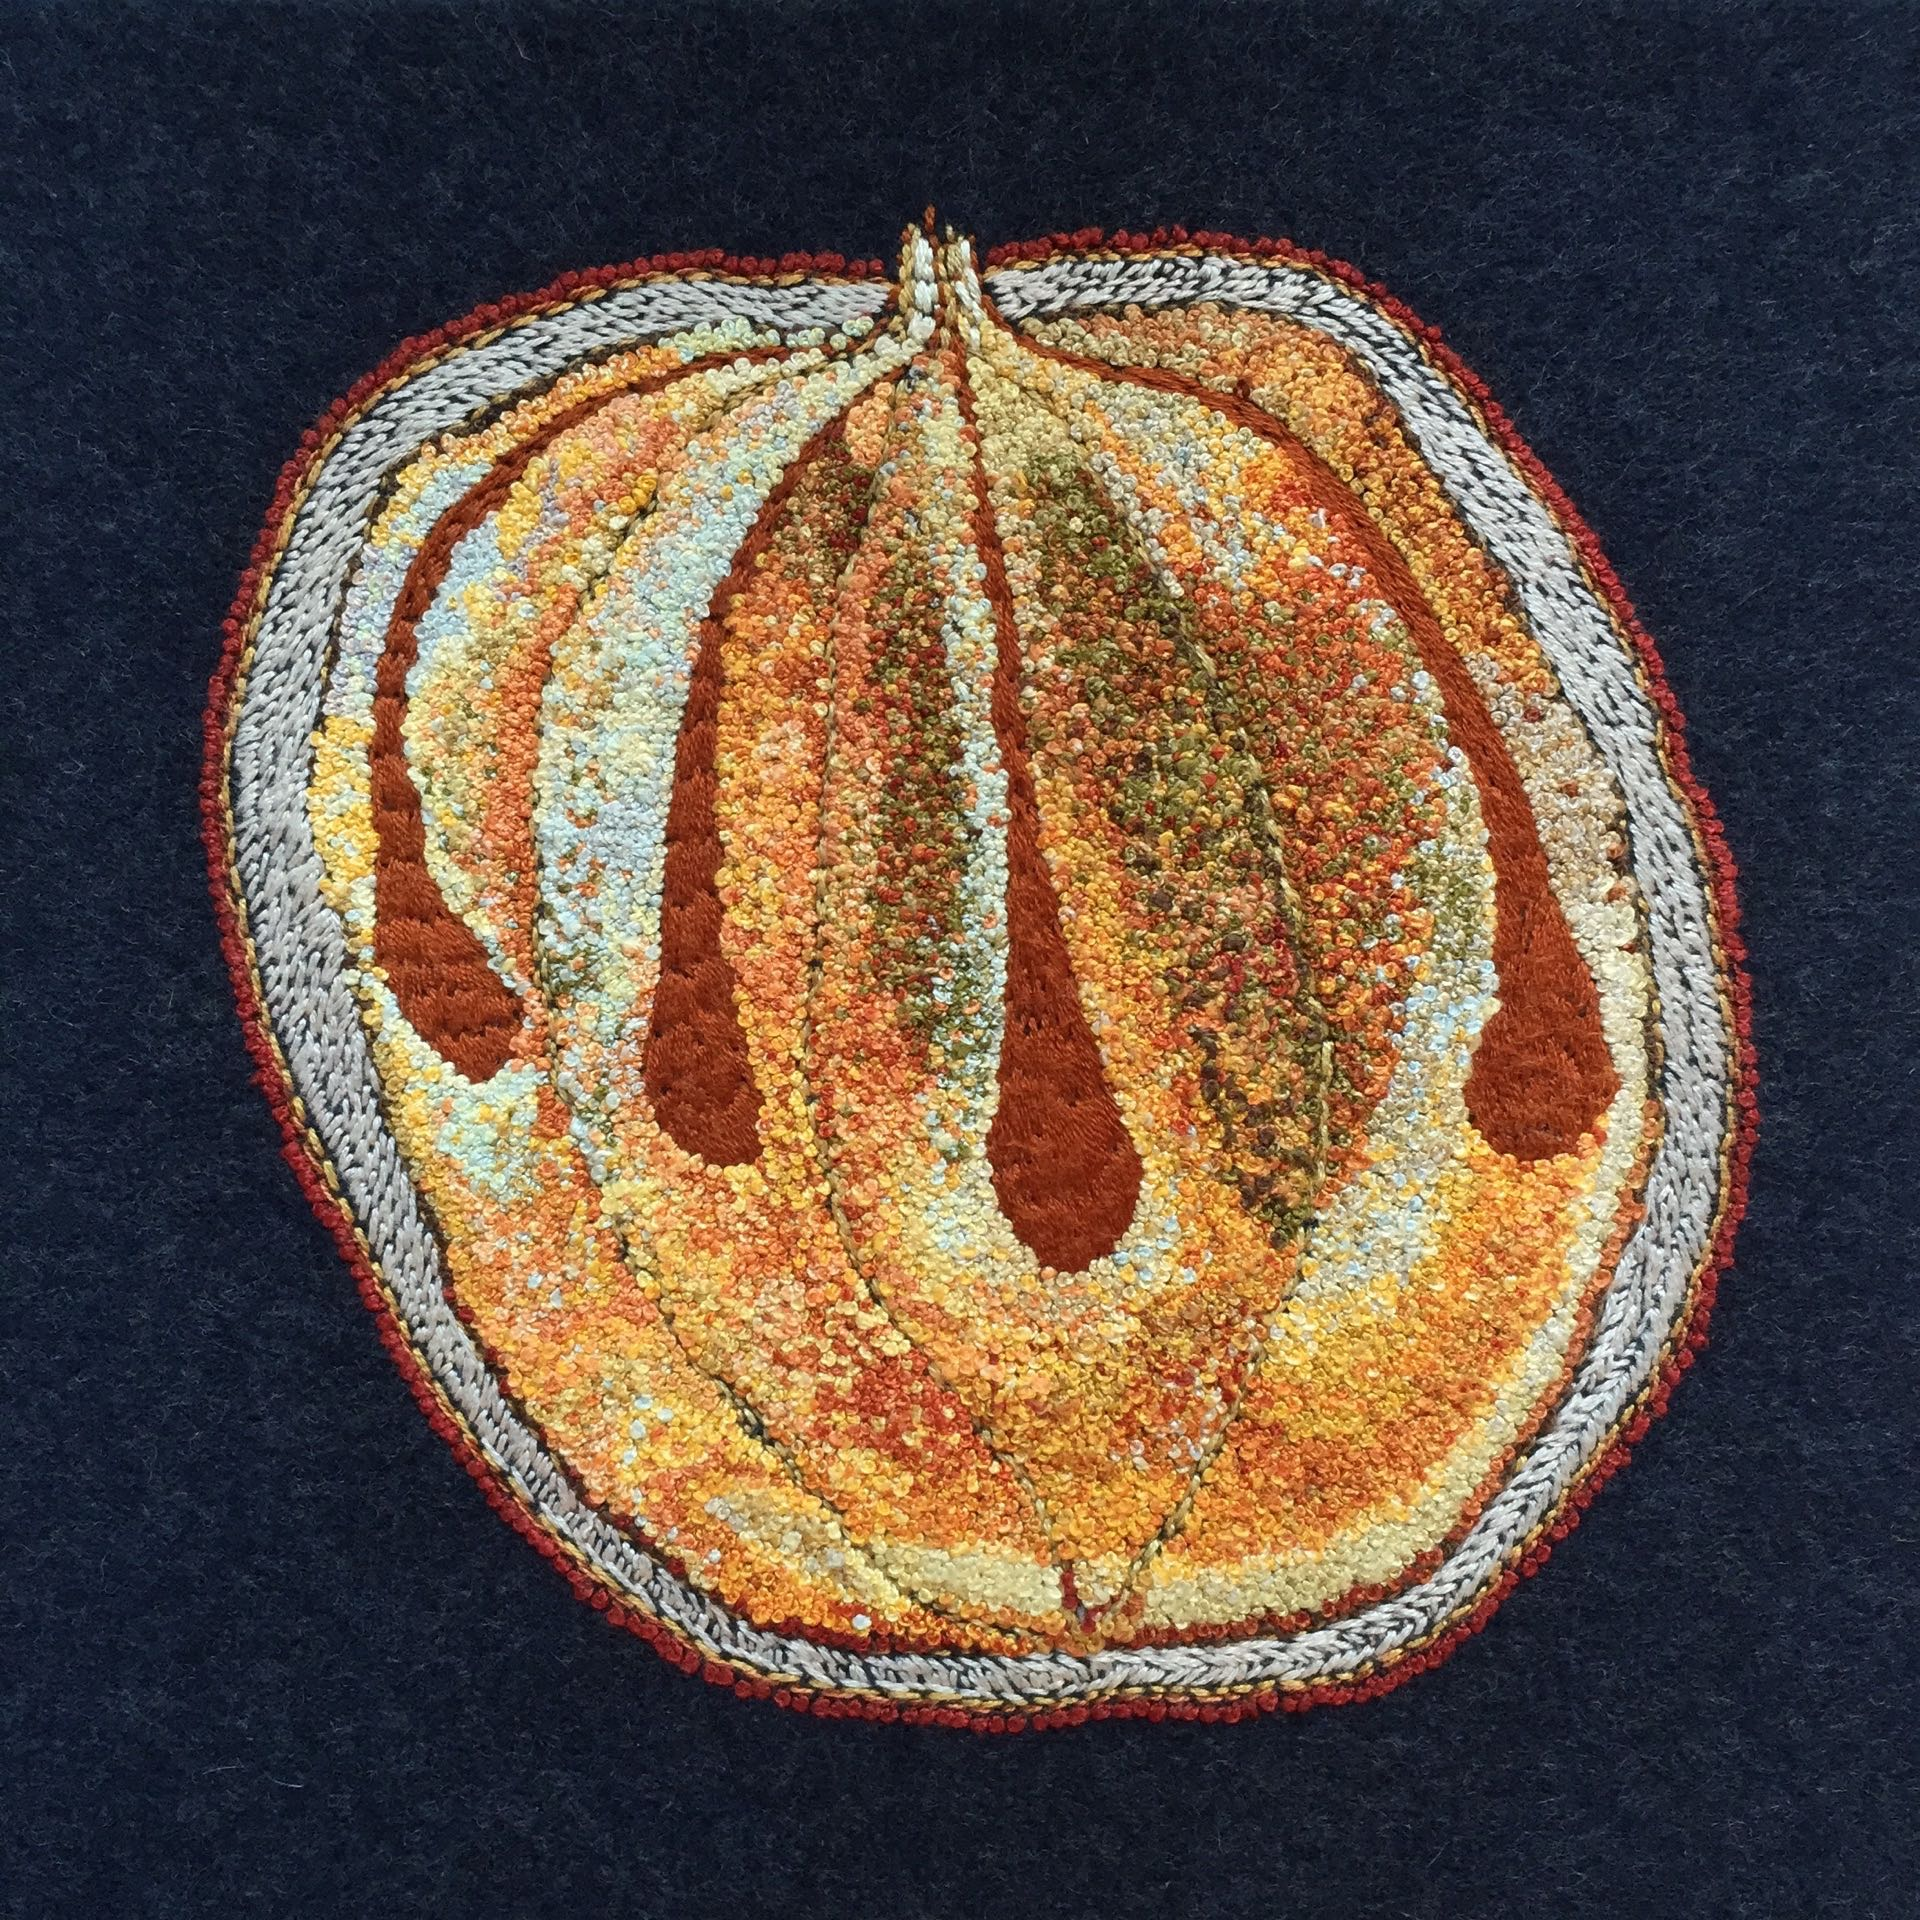 """Seed Head 1, 2016,French knots and wool felt appliqué, 8"""" x 8"""" x 1.5"""""""